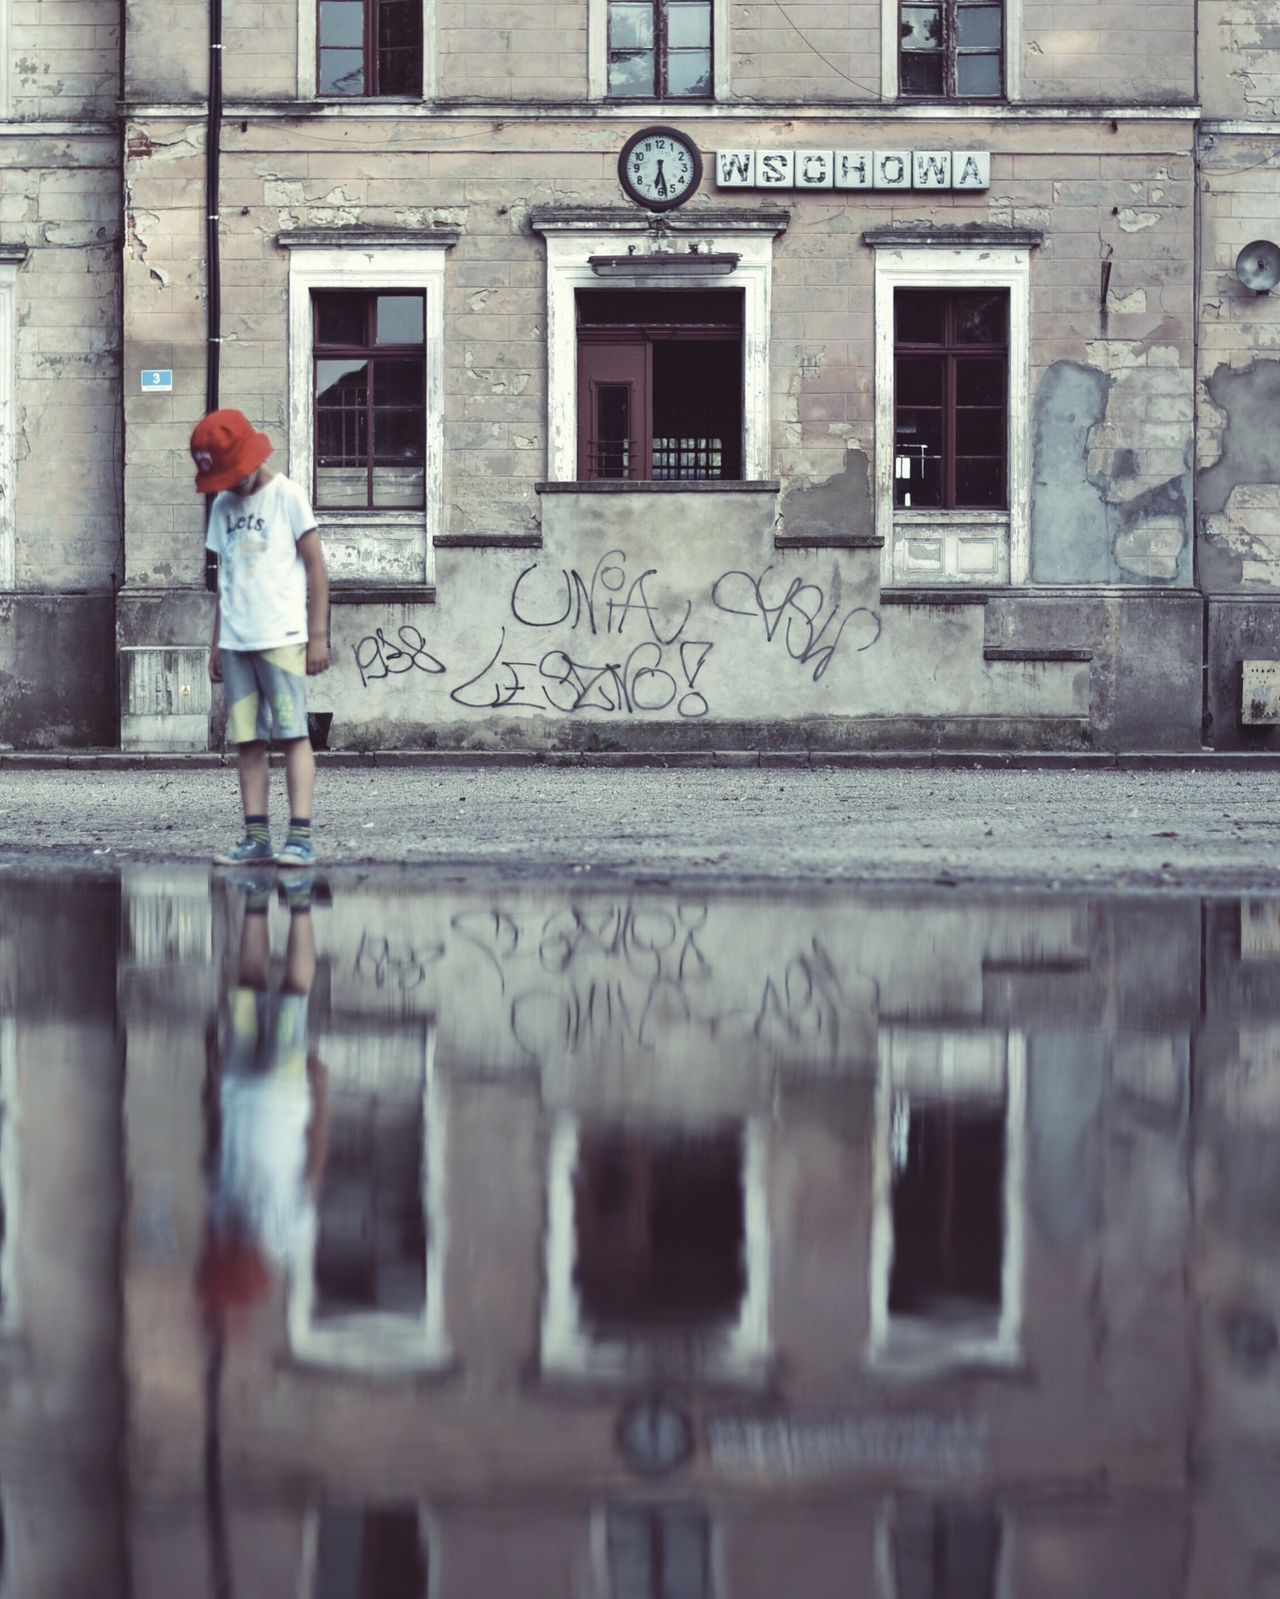 Reflection Puddleography Puddle Reflections Puddle City Urbanphotography VSCO EyeEm Best Shots Nikonphotography EyeEm Best Edits EyeEmBestPics Minimalpeople Minimalism Poland ExploreEverything Explore Exploring Urbexexplorer Urbex Wschowa The Great Outdoors - 2017 EyeEm Awards